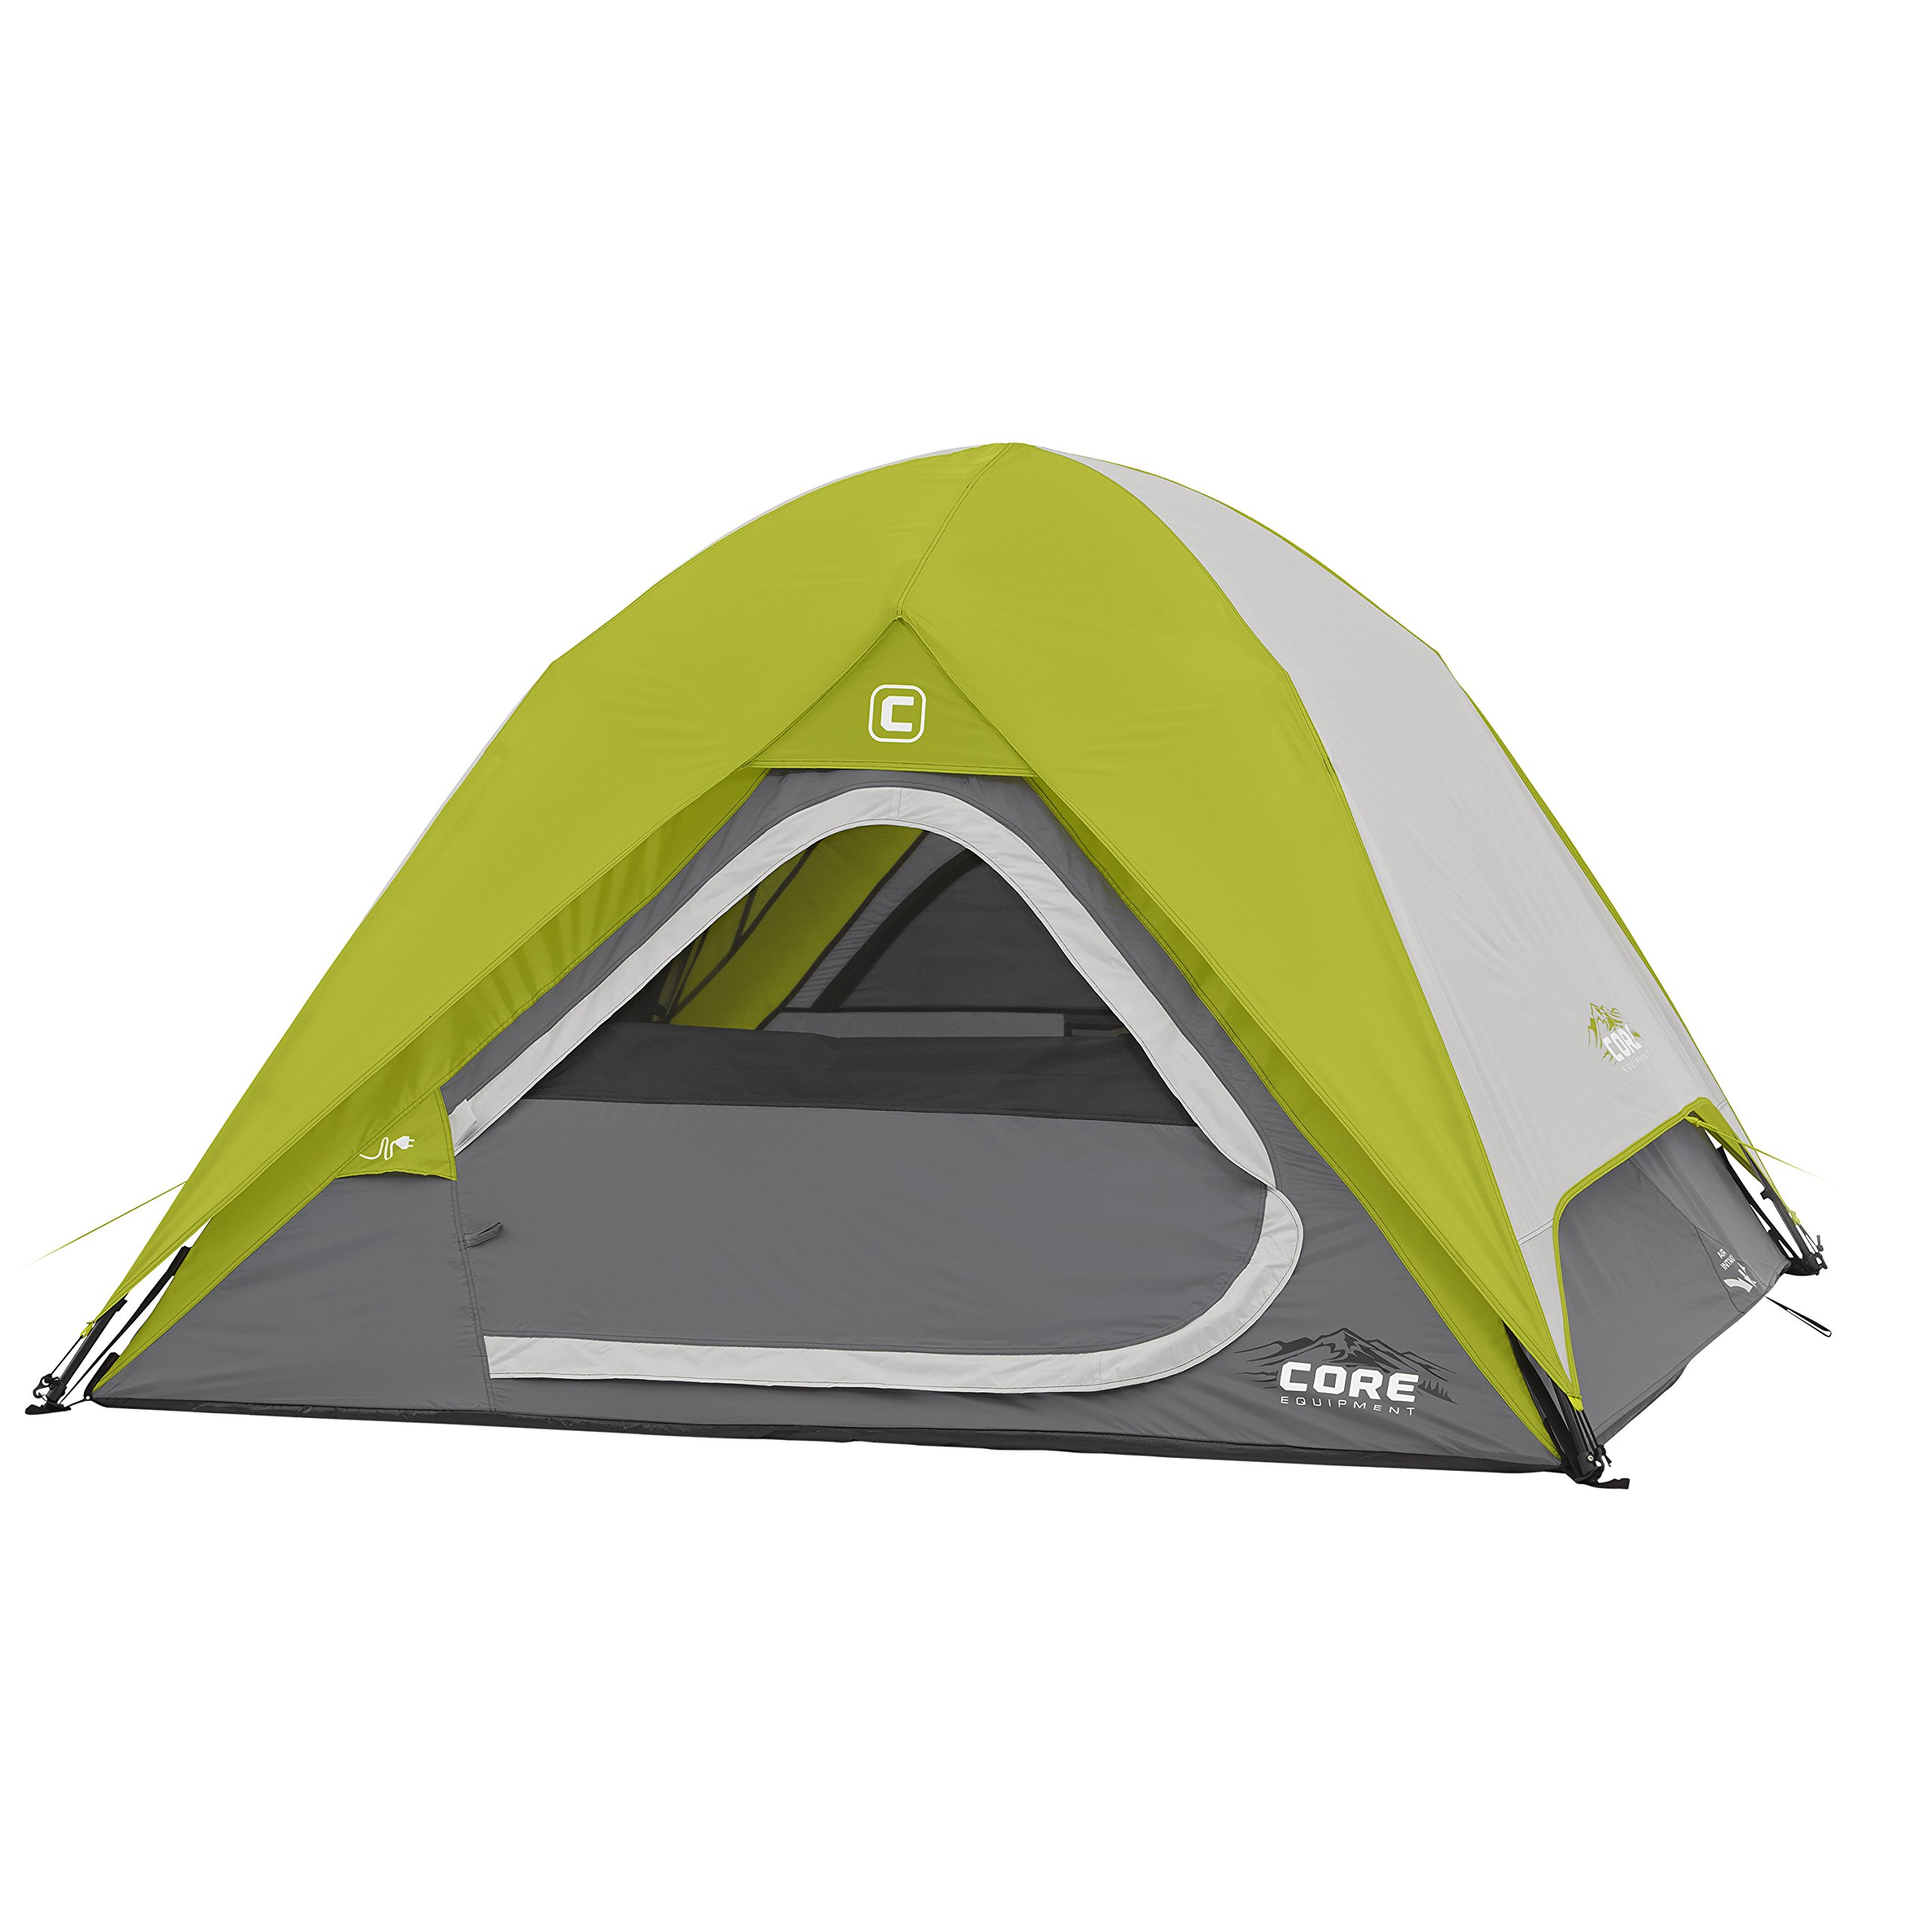 Core 3 Person Instant Dome Tent 7 X 7 Sports Outdoors